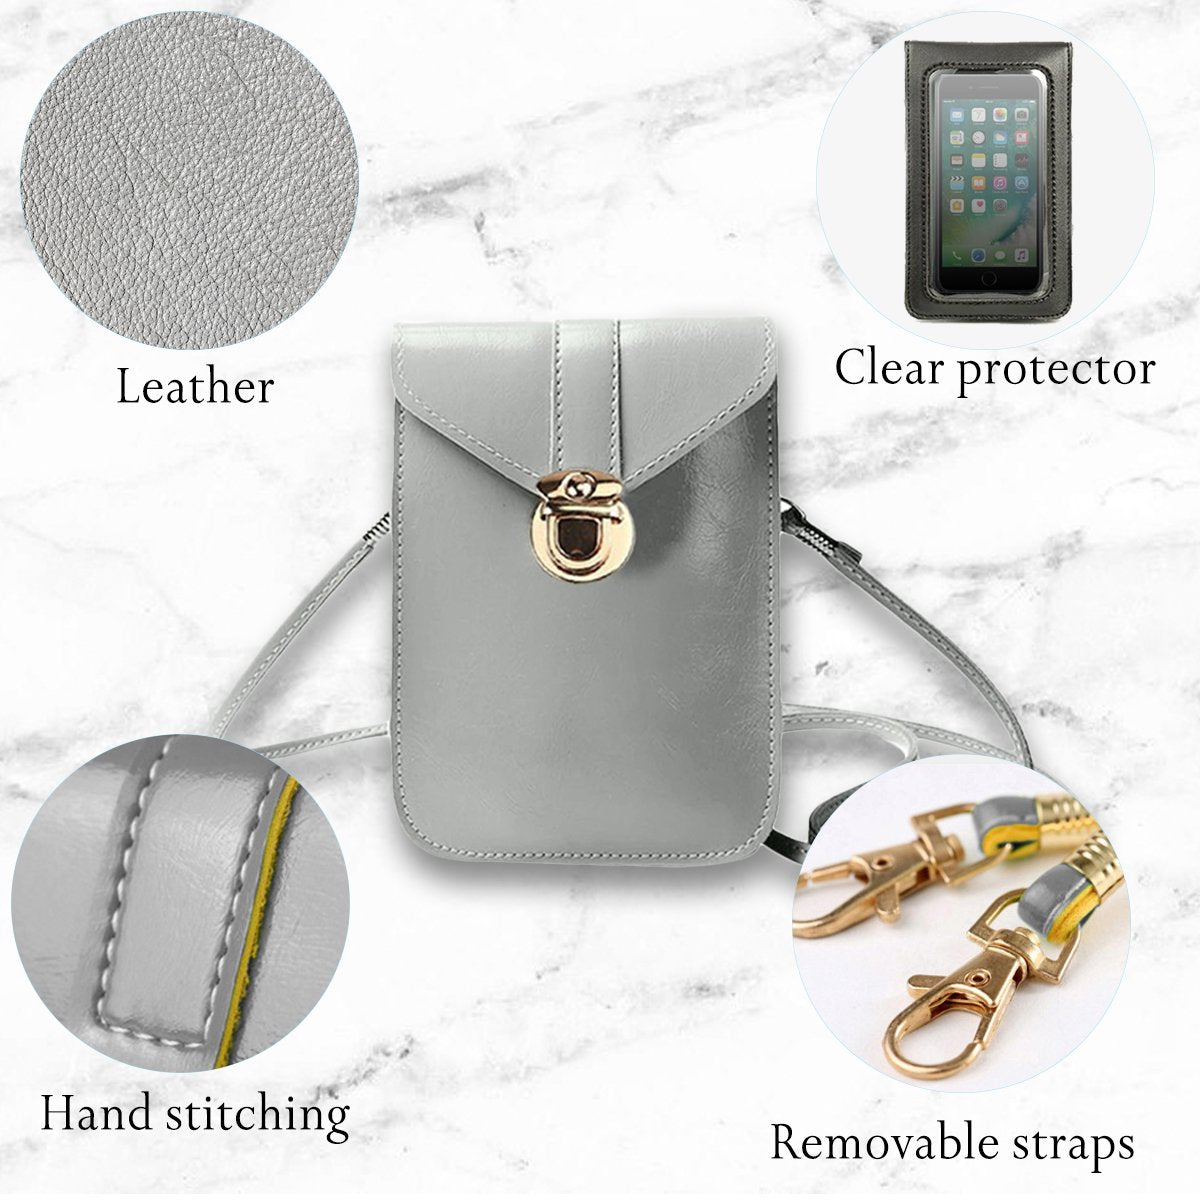 Kara Touch Screen Waterproof Leather Crossbody Phone Bag for iPhone, Galaxy & Other